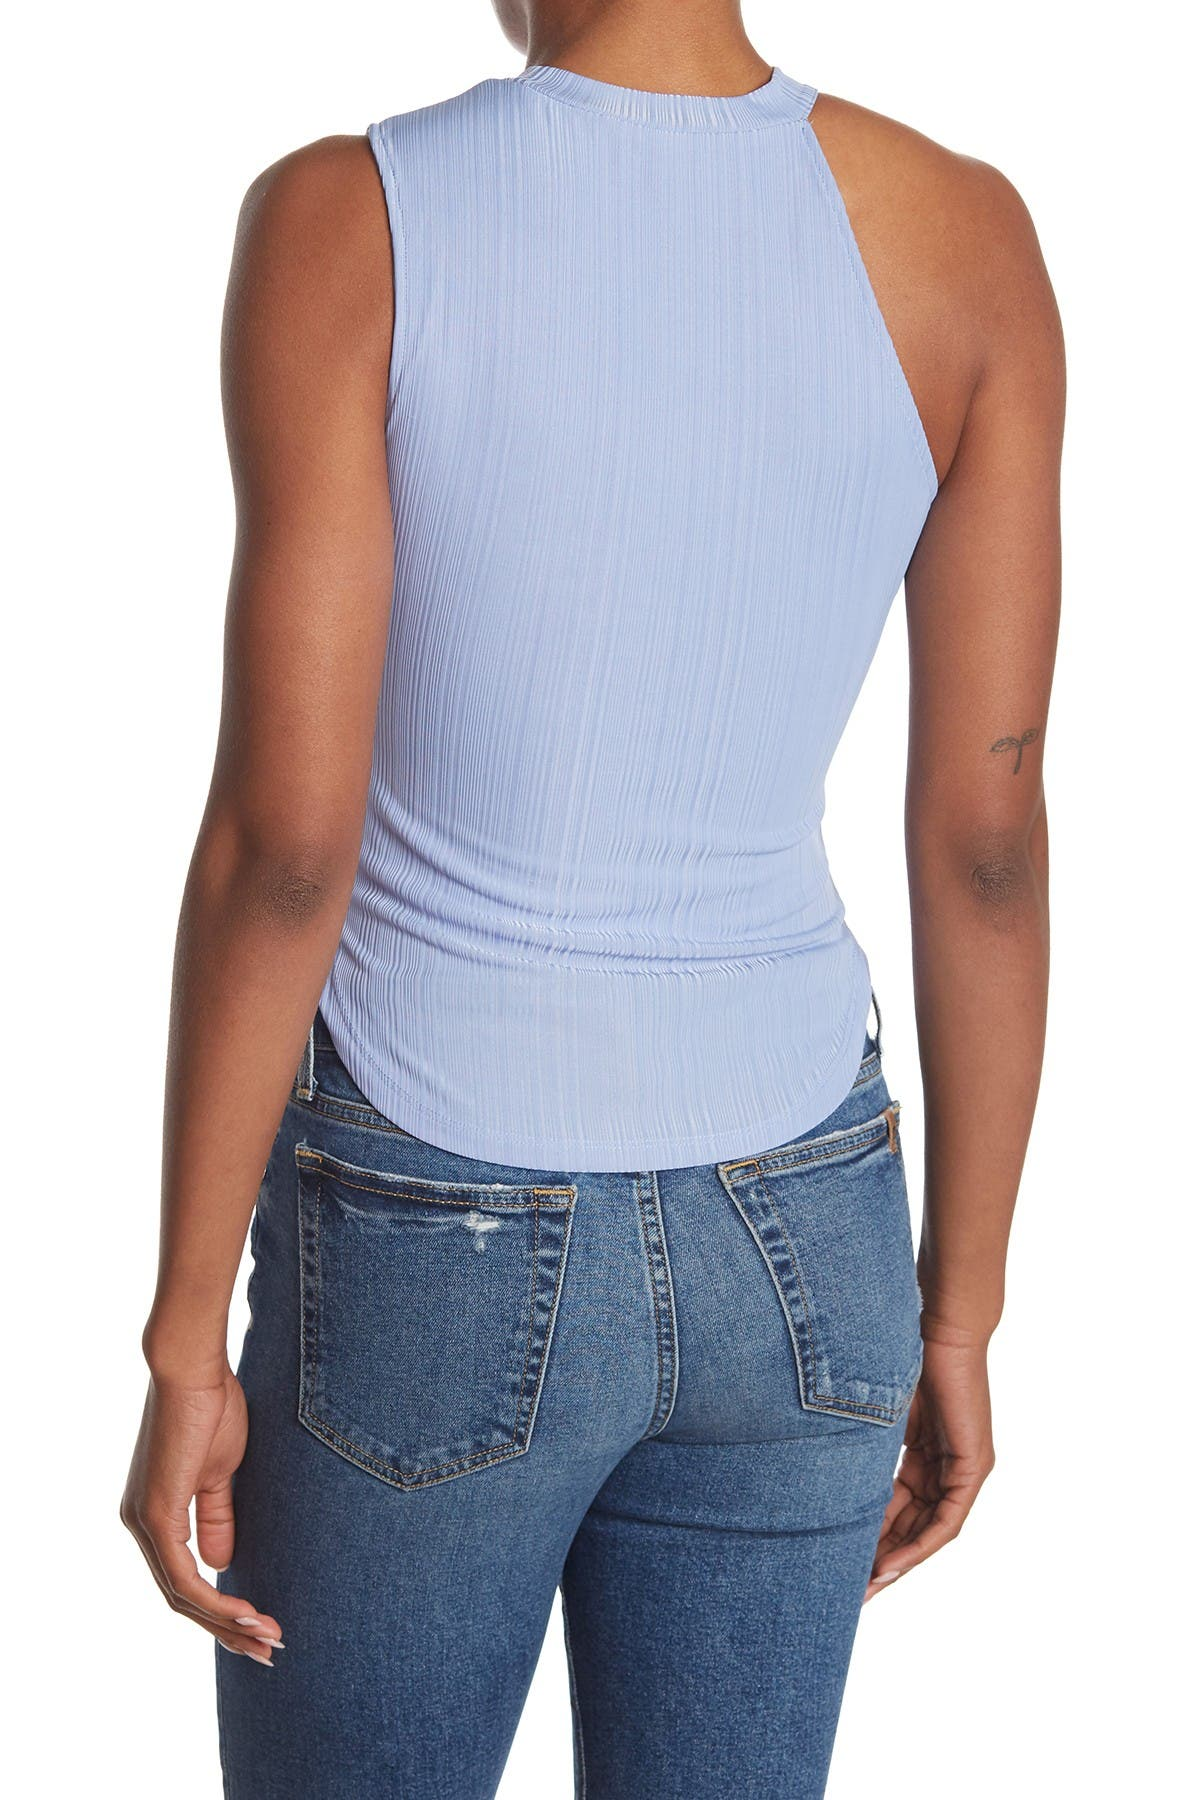 Image of NSR Andi Asymmetrical Knit Top